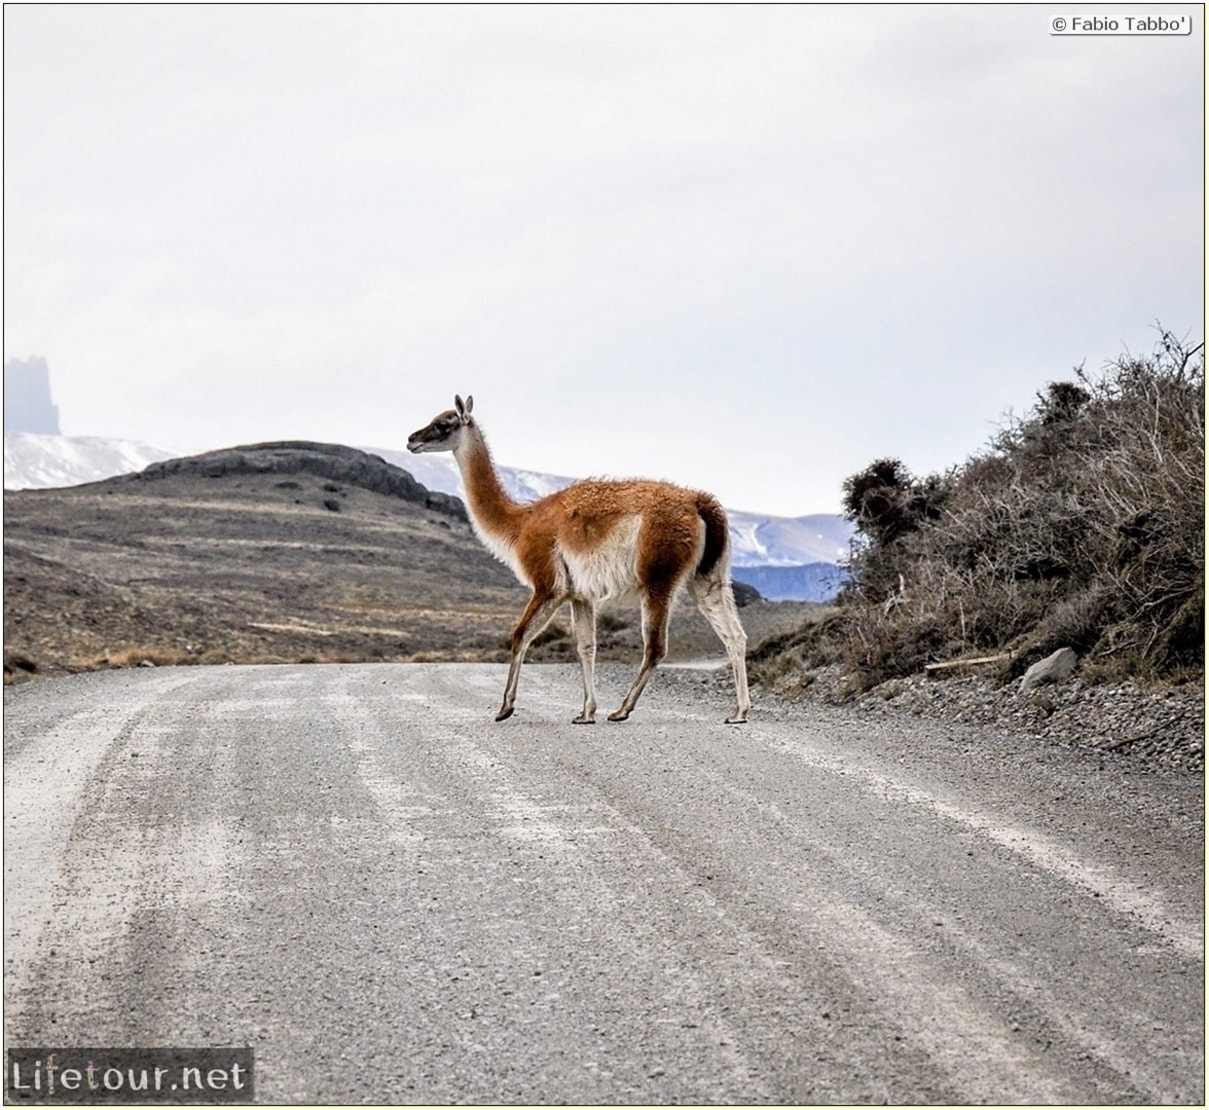 Fabio_s-LifeTour-Chile-2015-September-Torres-del-Paine-Lama-Crossing-11424-cover